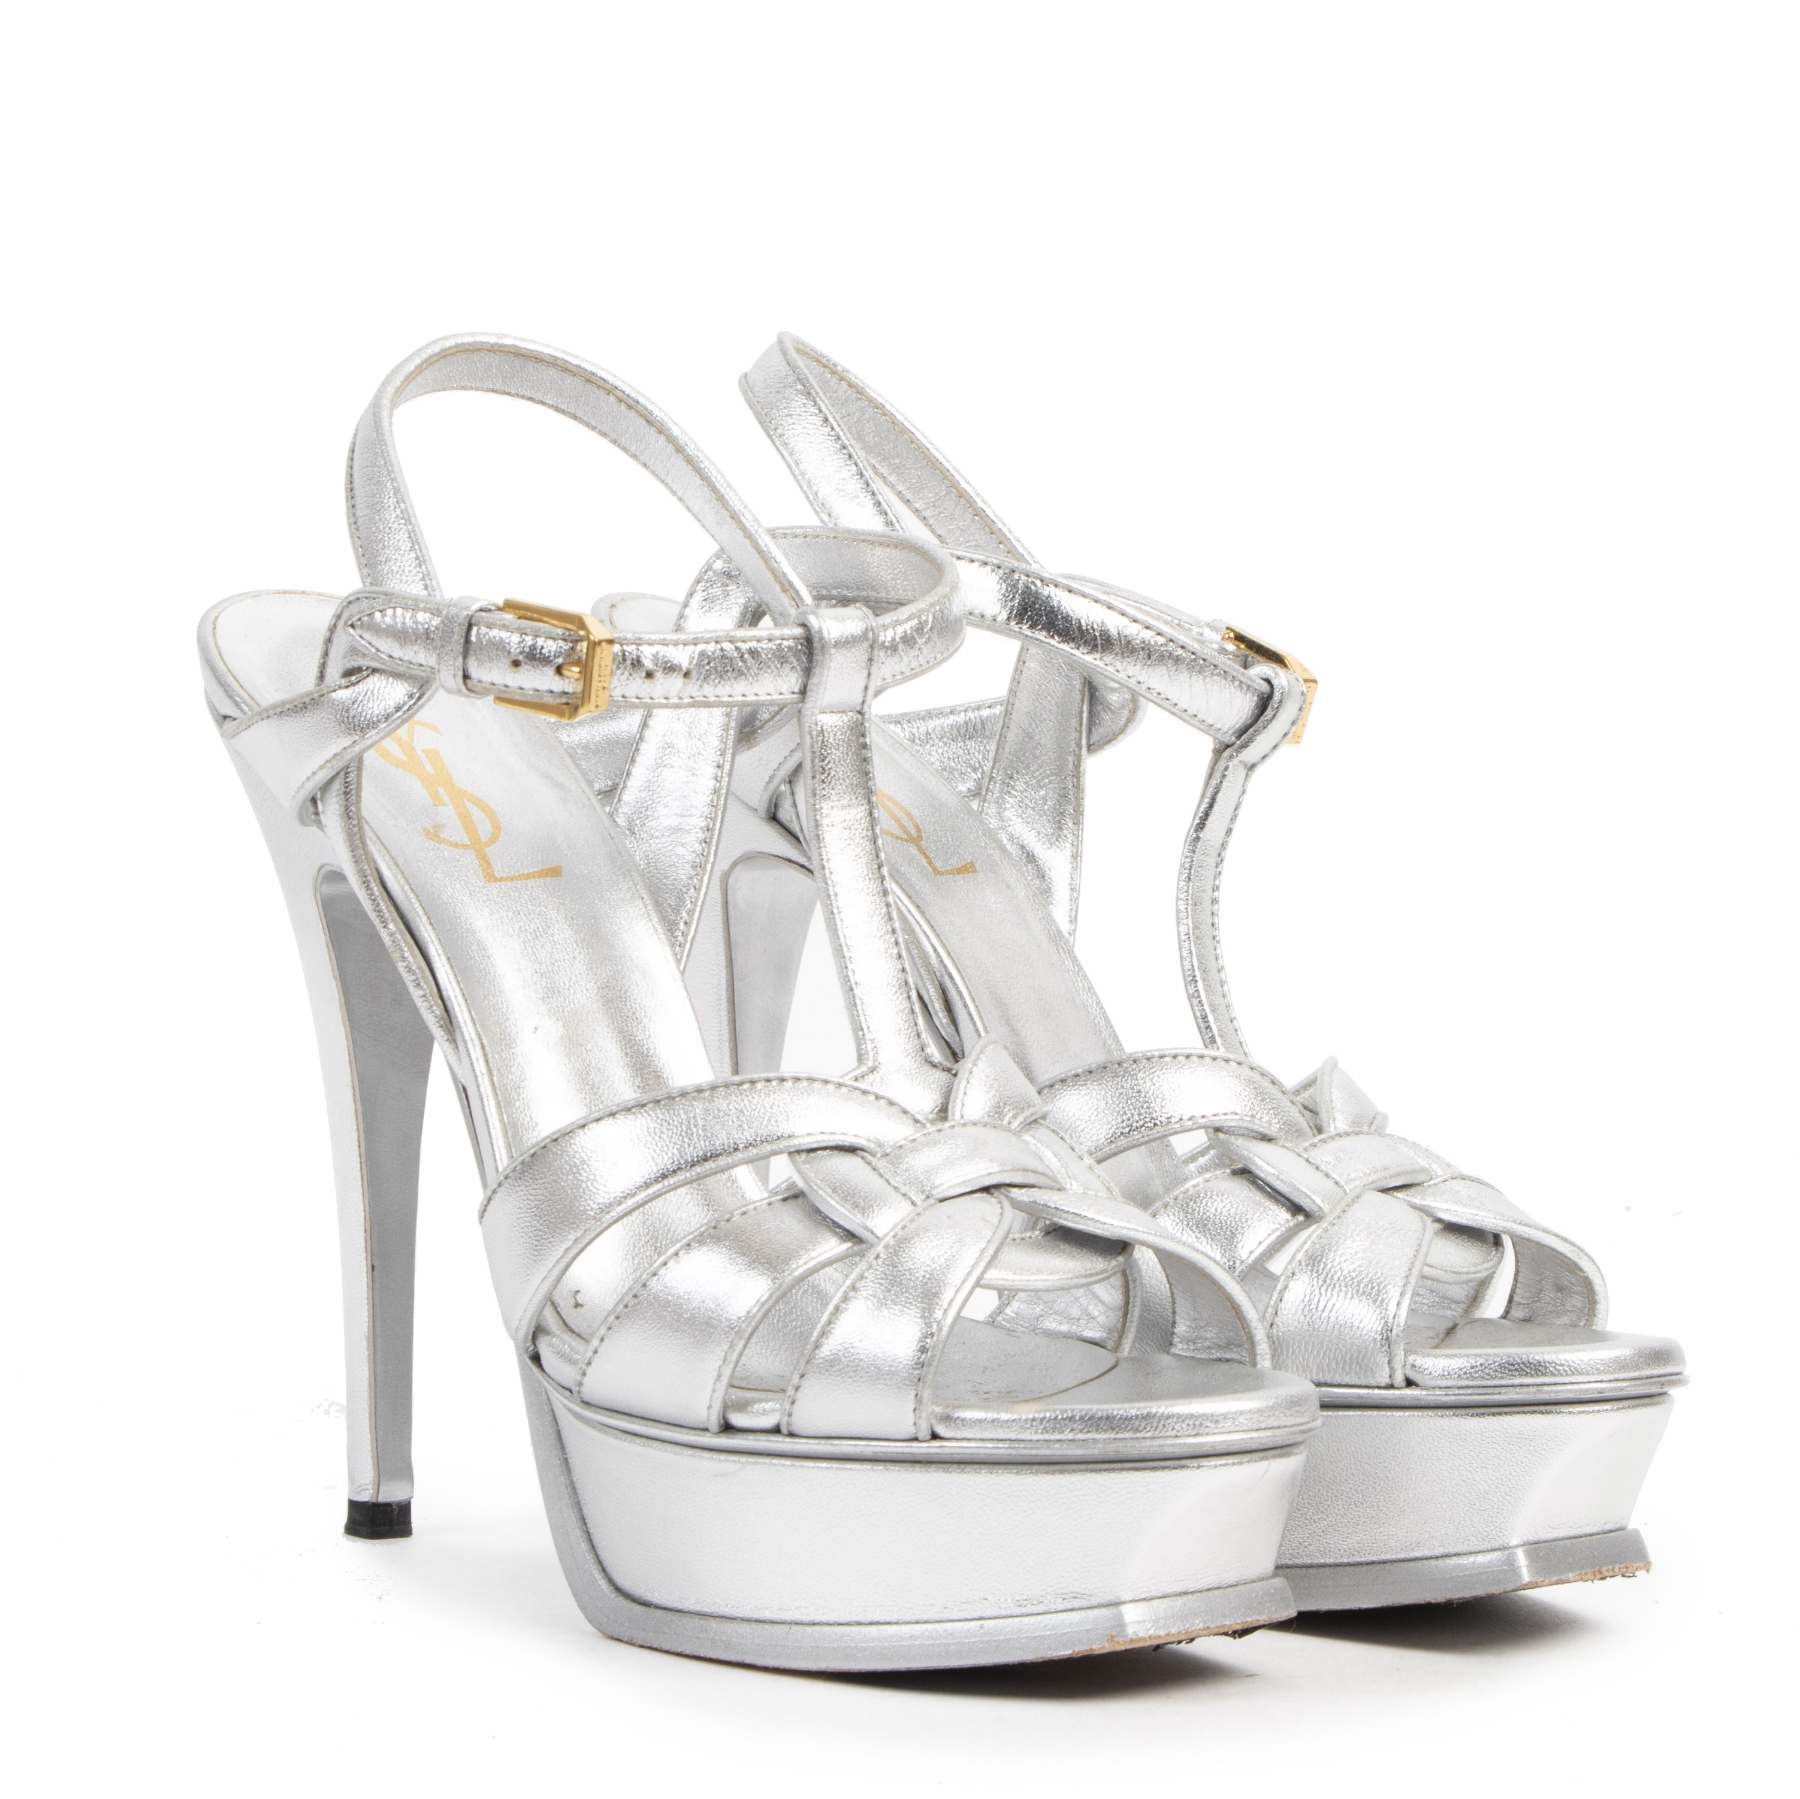 Yves Saint Laurent Silver Metallic Tribute Platform Sandals